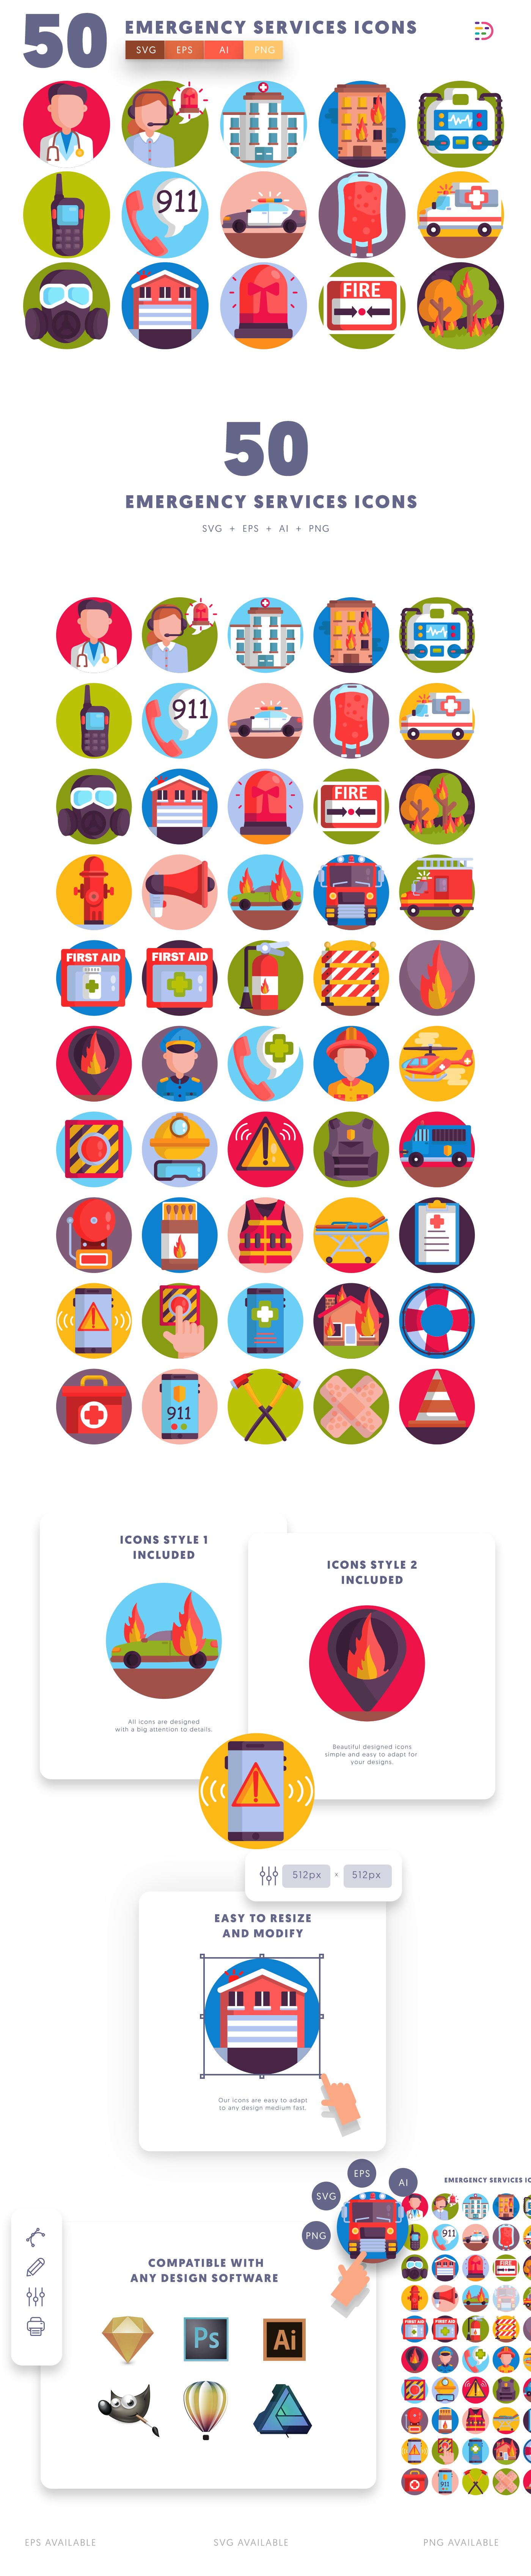 Emergency Services icons info graphic